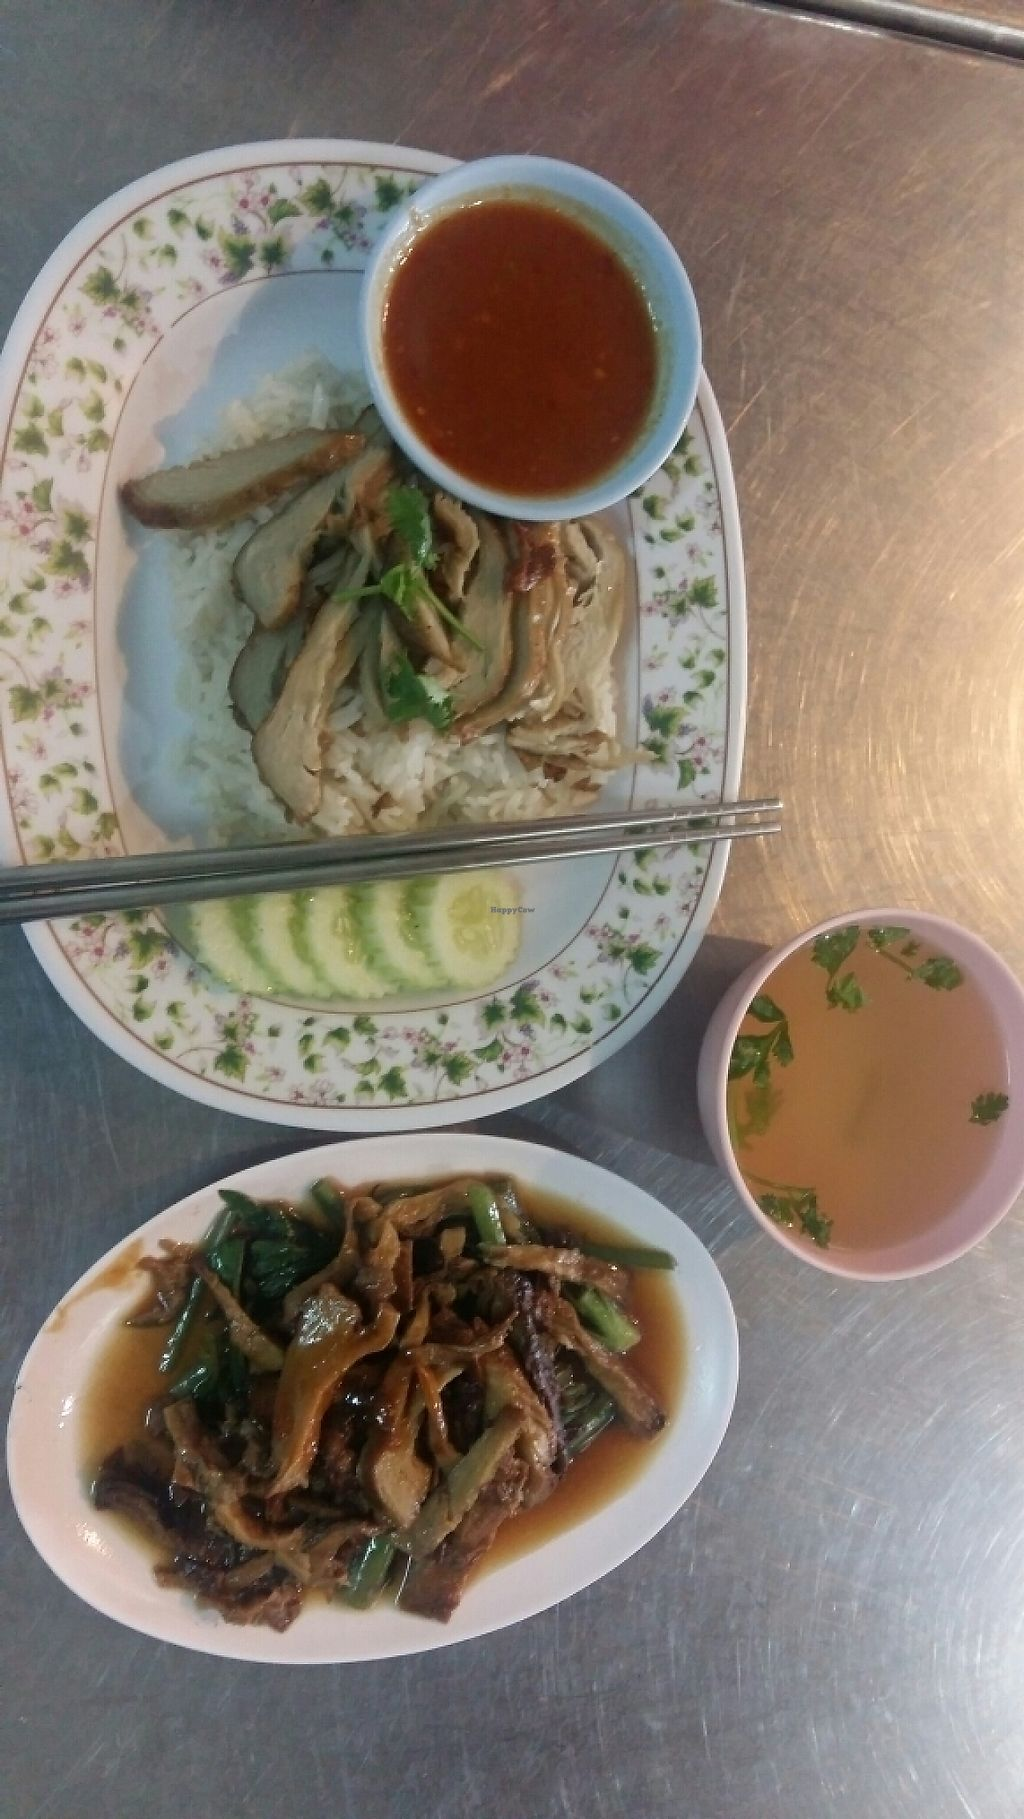 """Photo of Ming Ter  by <a href=""""/members/profile/AnshulGupta"""">AnshulGupta</a> <br/>delicious food made of vegetable protein <br/> May 30, 2017  - <a href='/contact/abuse/image/38199/264087'>Report</a>"""